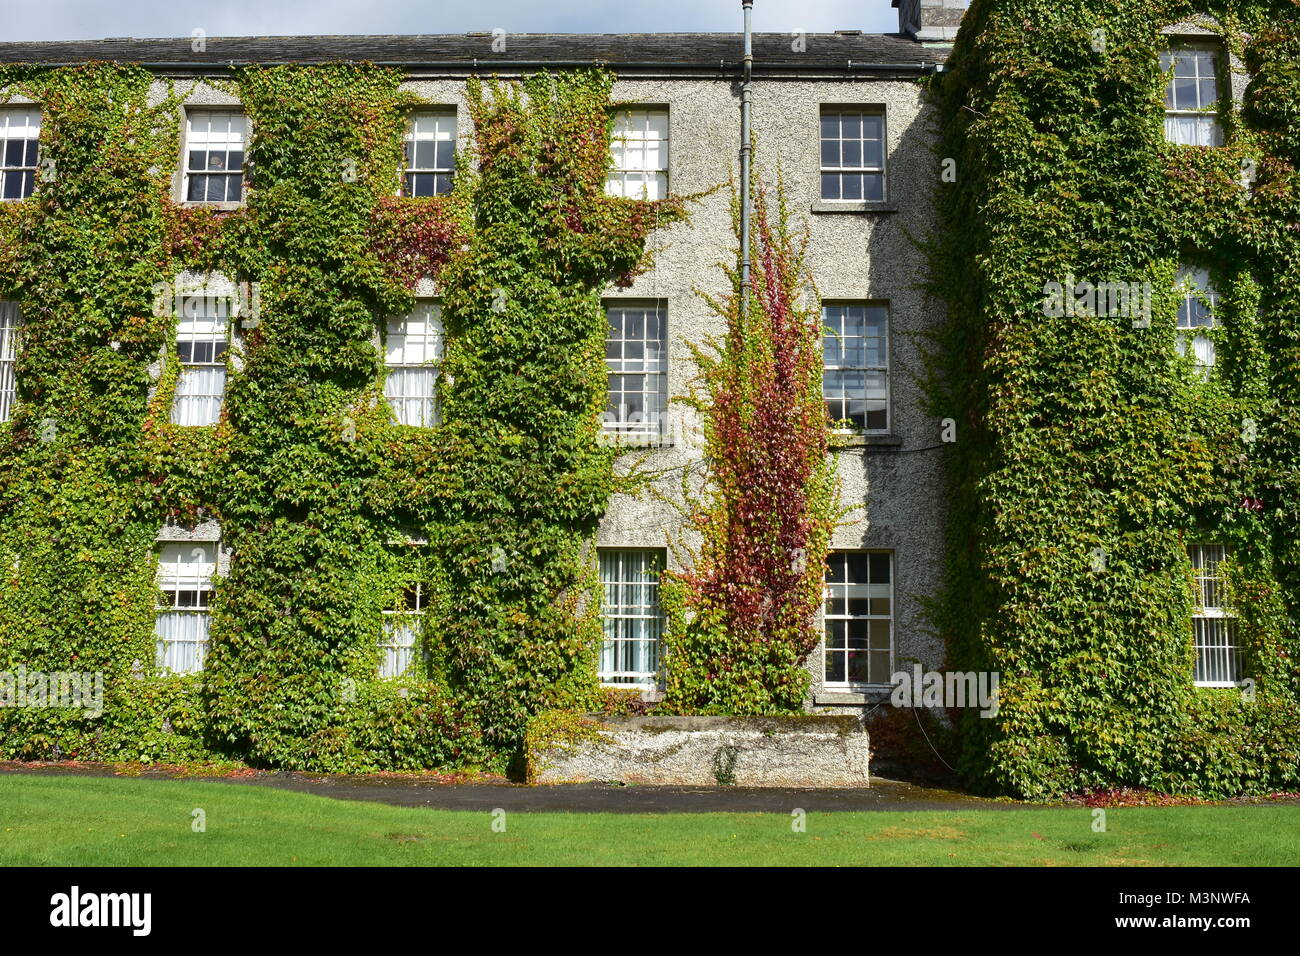 Multi-story dormitory building of Maynooth University covered with dense vines. - Stock Image